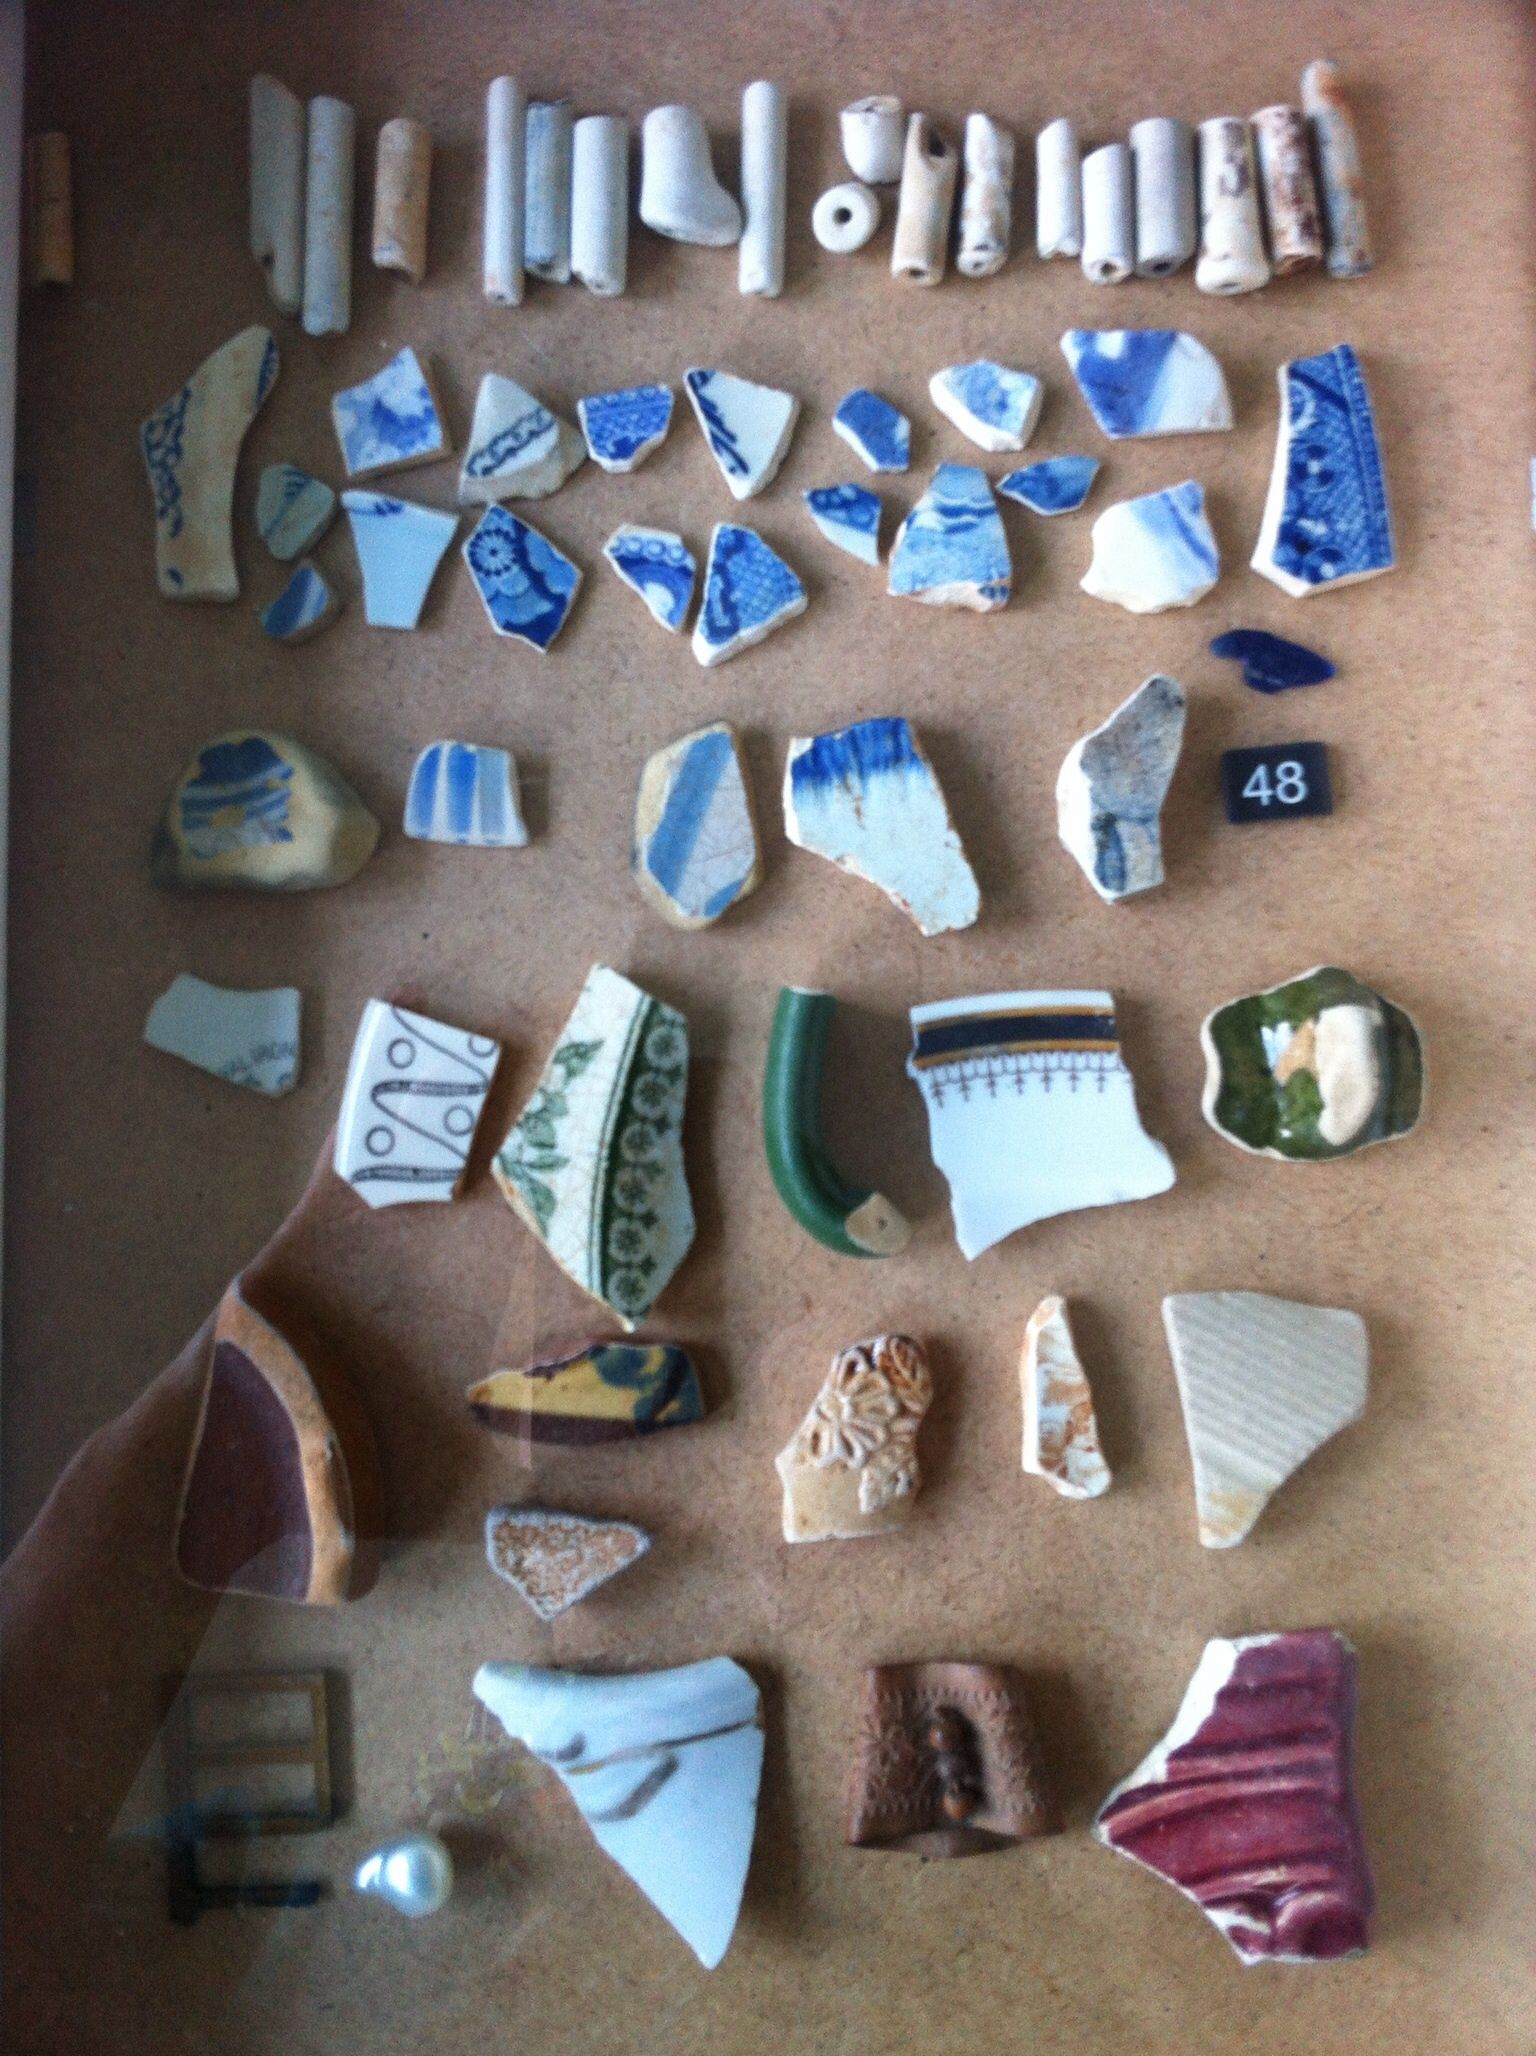 Large amount of Chinese ceramics shards unearthed by archaeologists